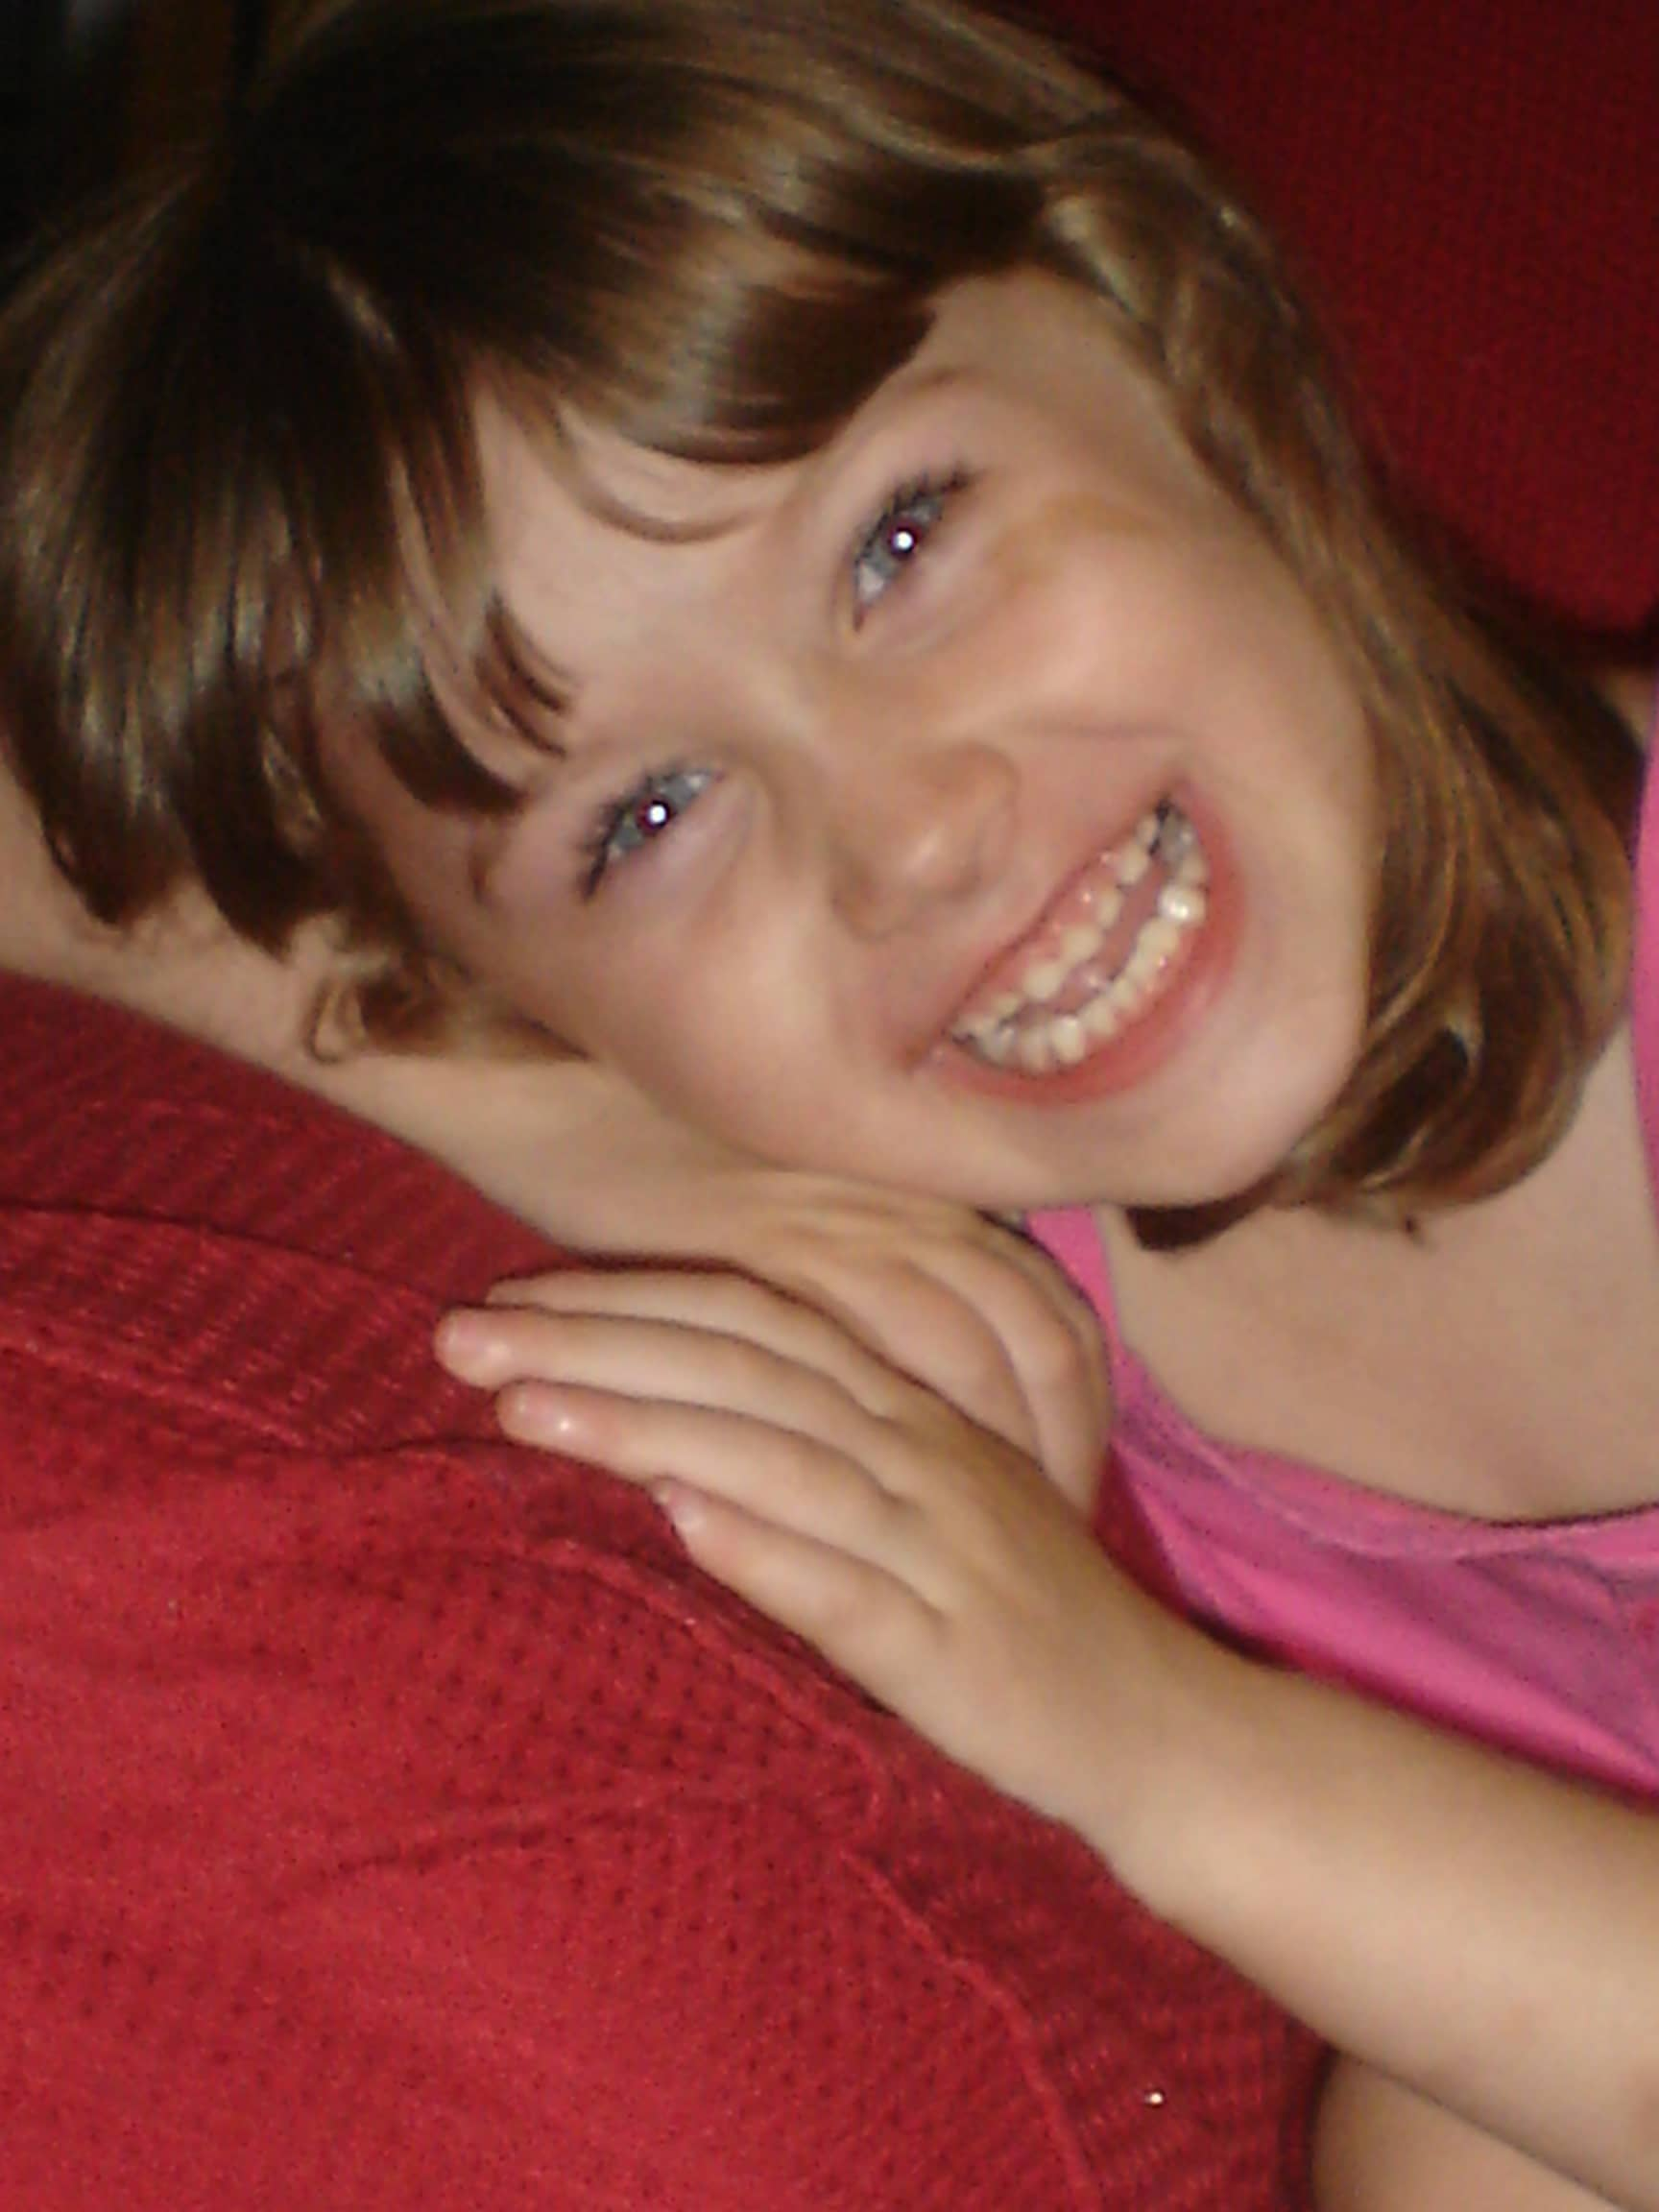 Cute little girl with brown hair